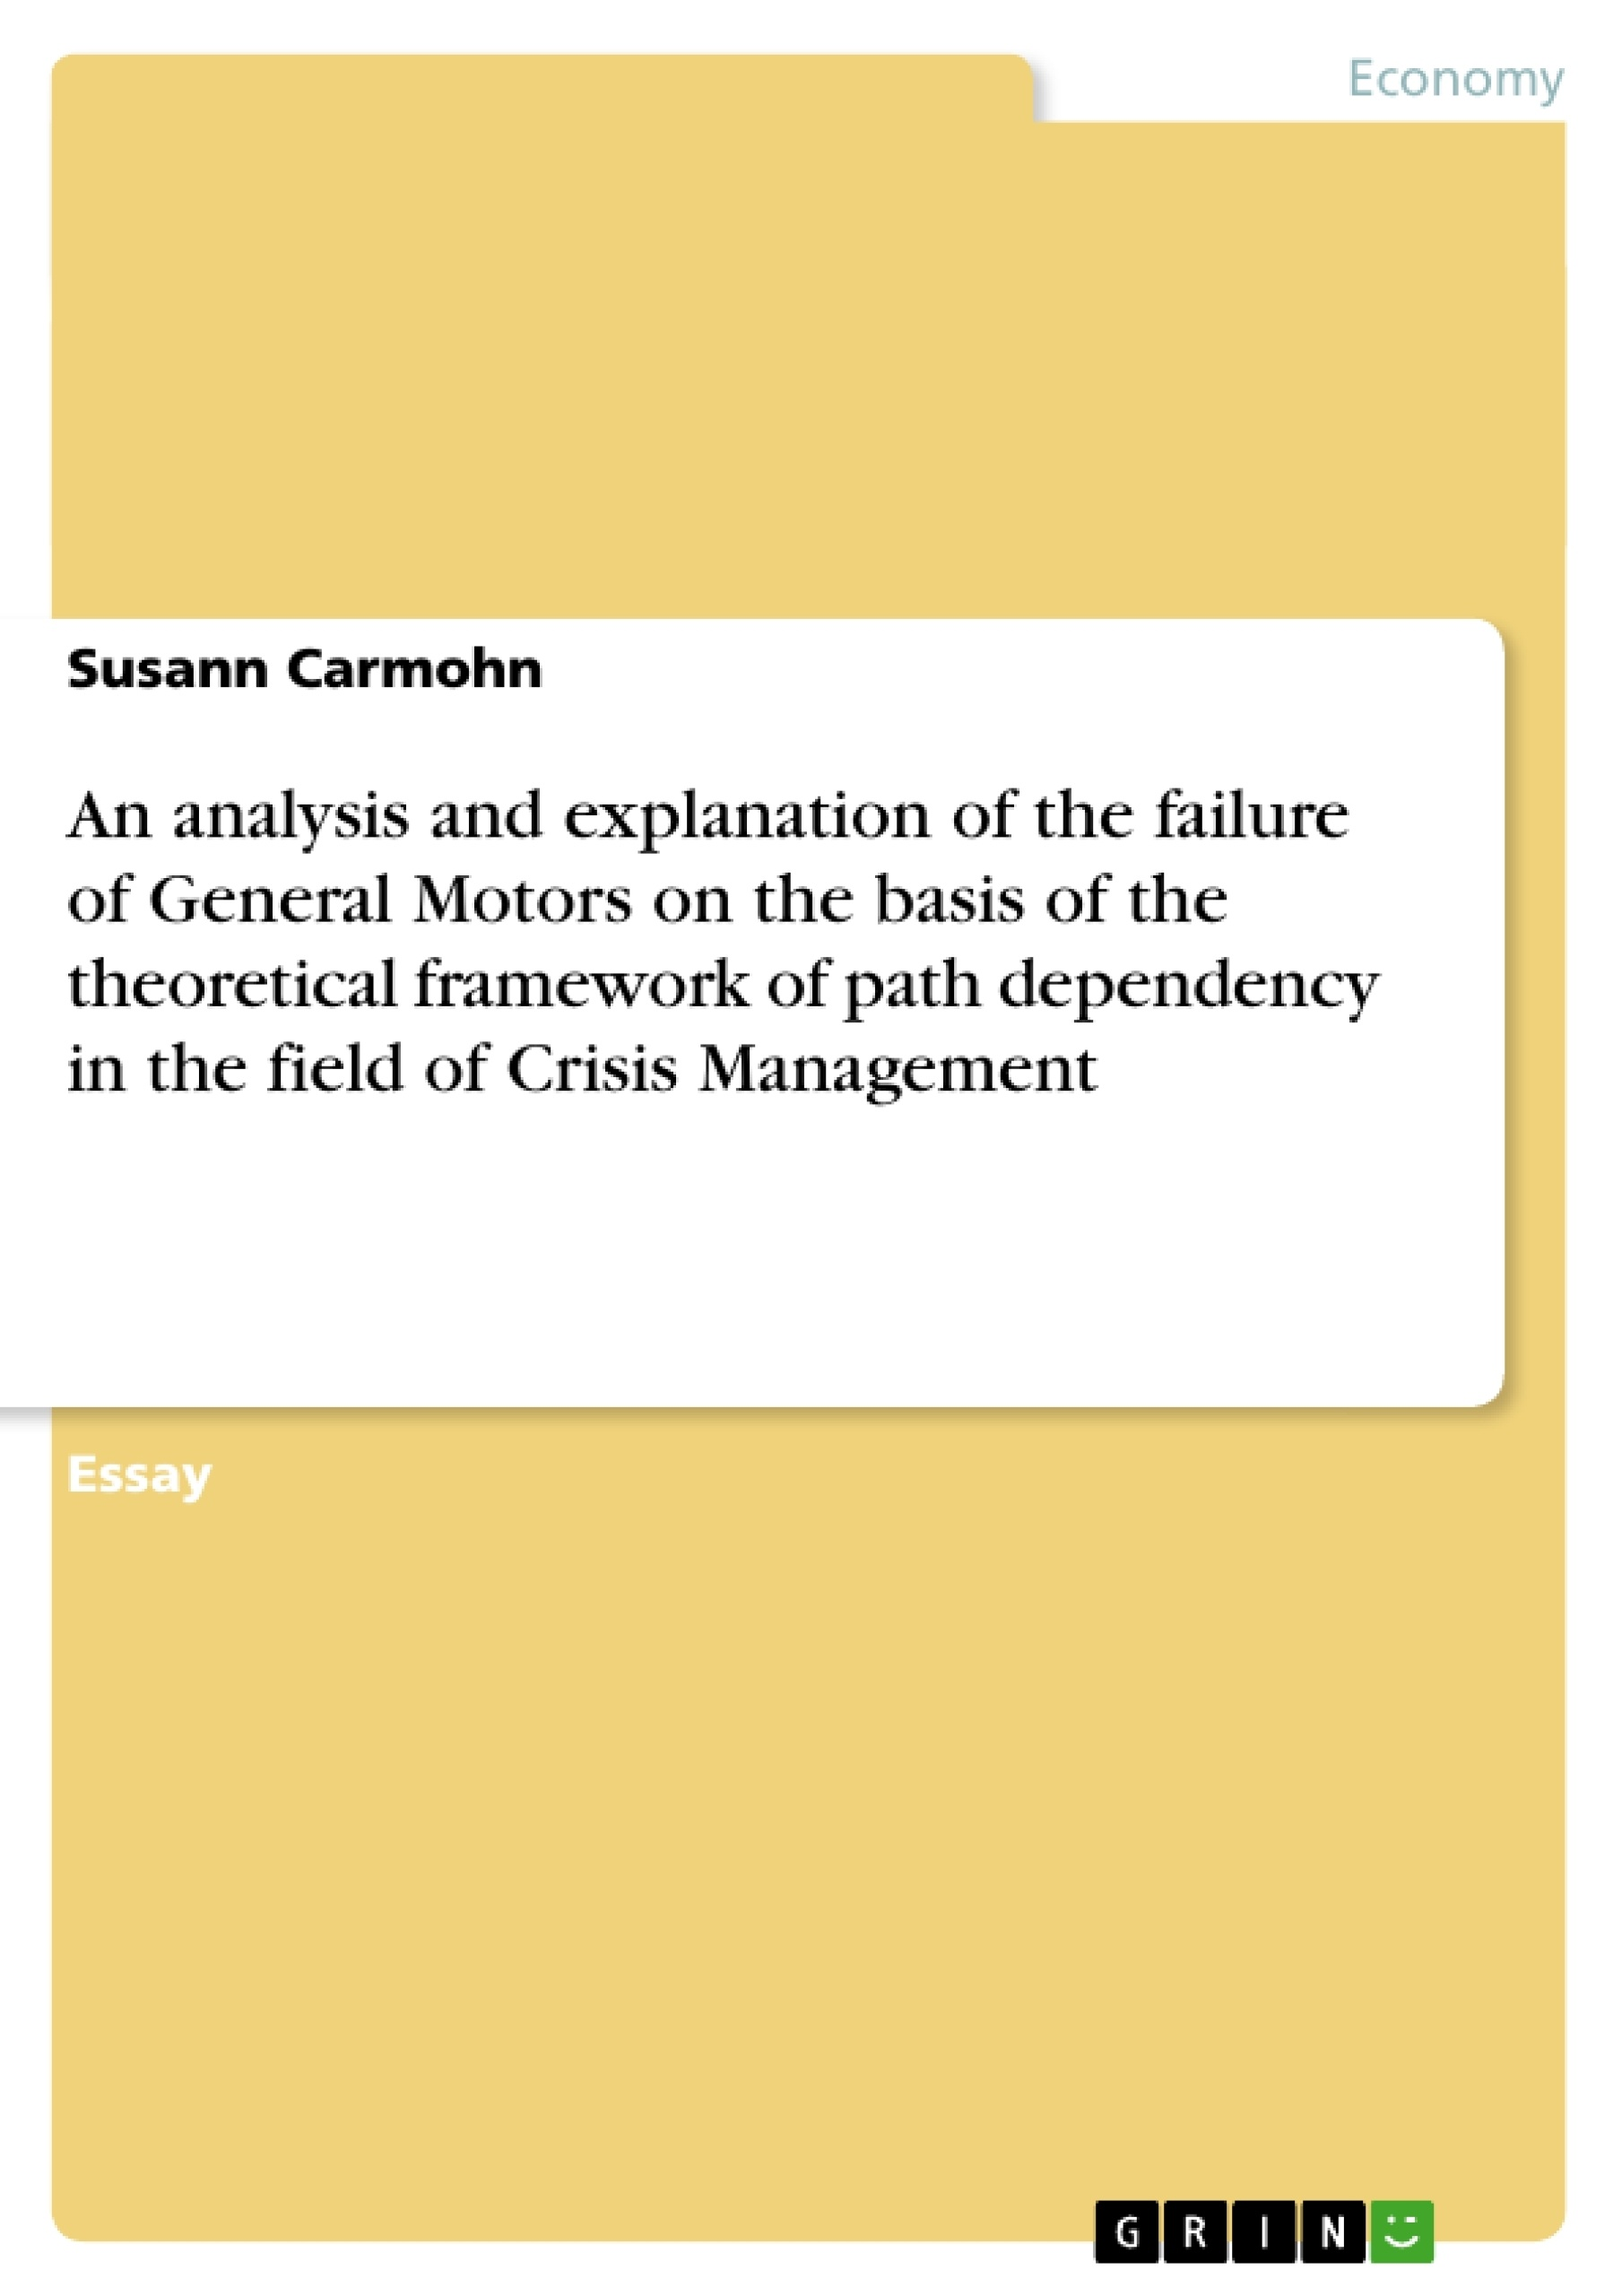 Title: An analysis and explanation of the failure of General Motors on the basis of the theoretical framework of path dependency in the field of Crisis Management